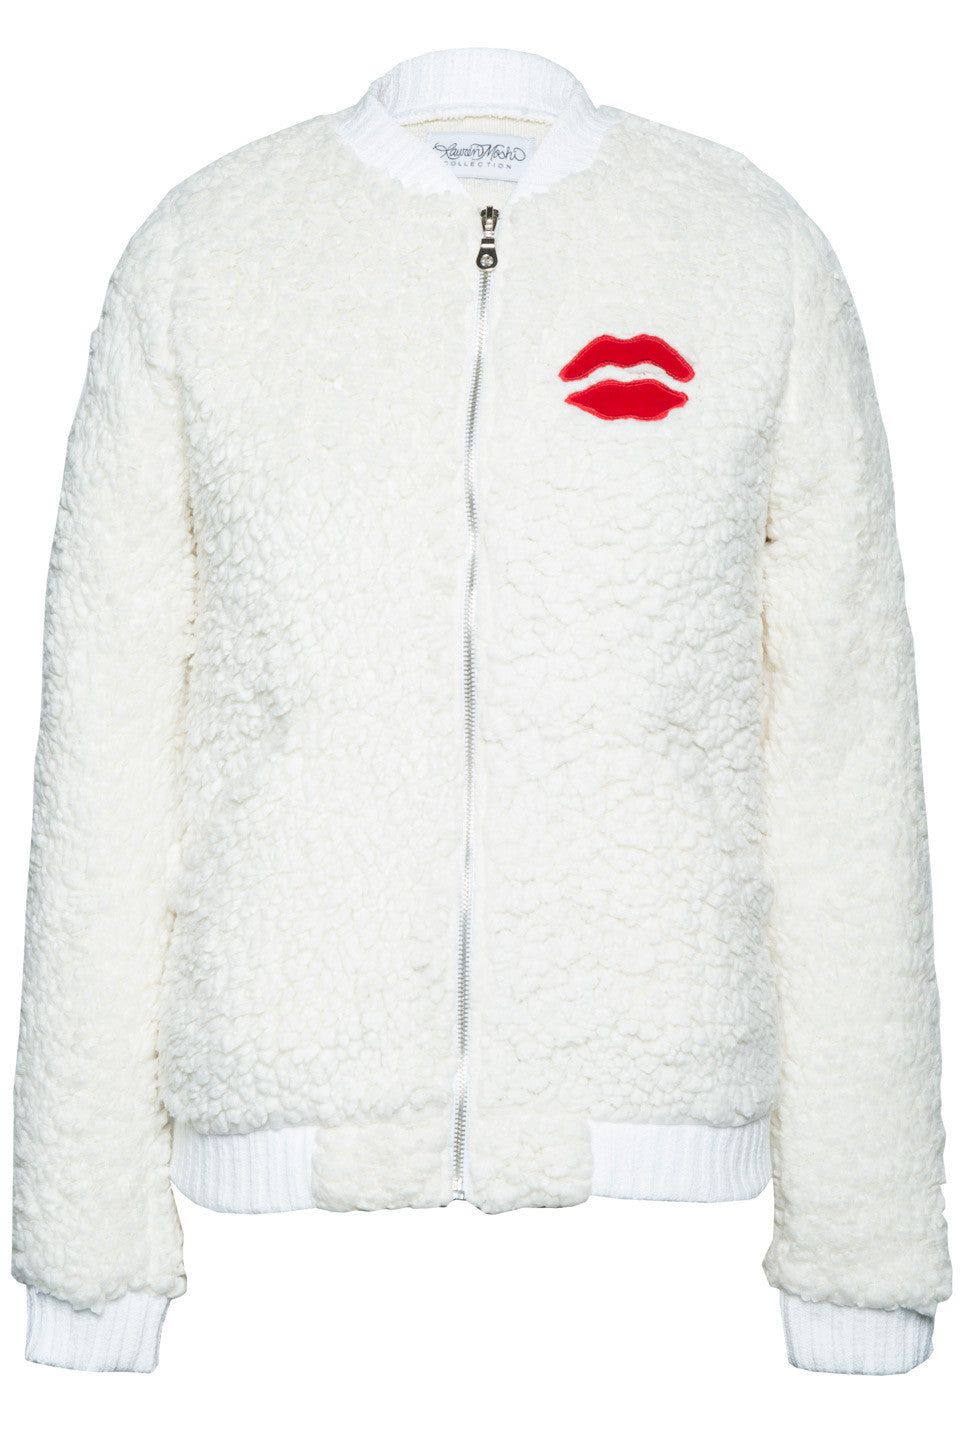 EXCLUSIVE! Hartley Red Mouth Patch Faux Fur Jacket - Lauren Moshi - 2